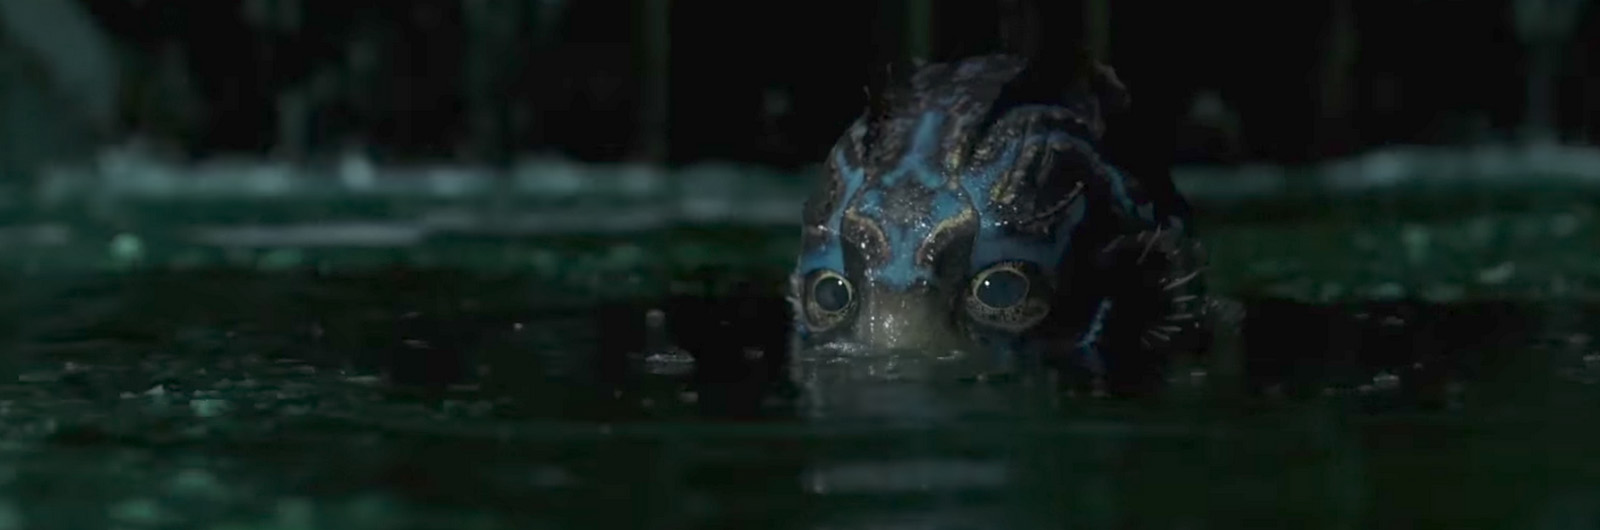 Someone Made a Dildo Based on the Fish-Man from <em>The Shape of Water</em>